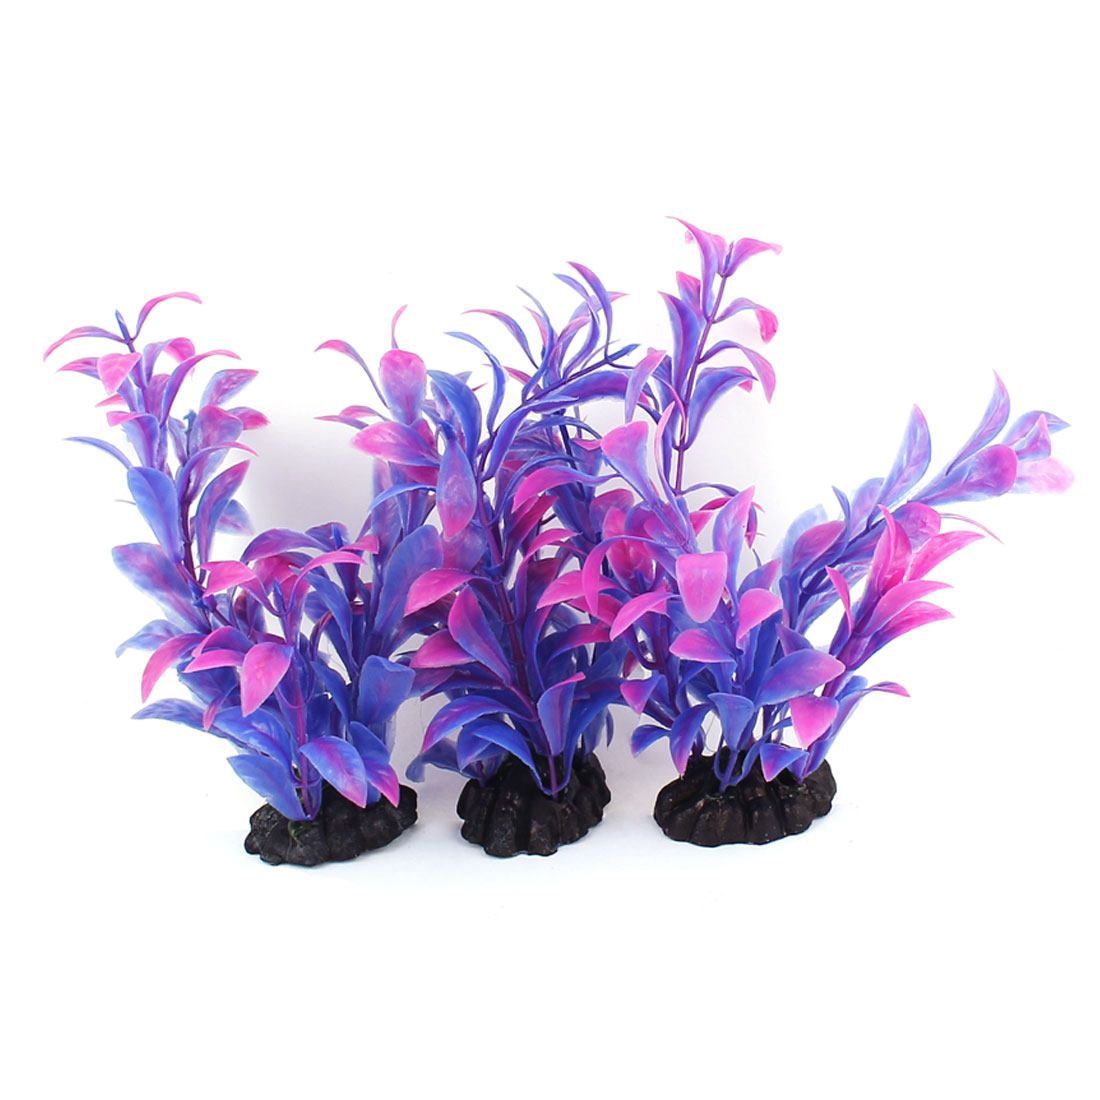 Plastic Leaf Aquatic Plant Fish Tank Aquarium Decor Purple 3PCS